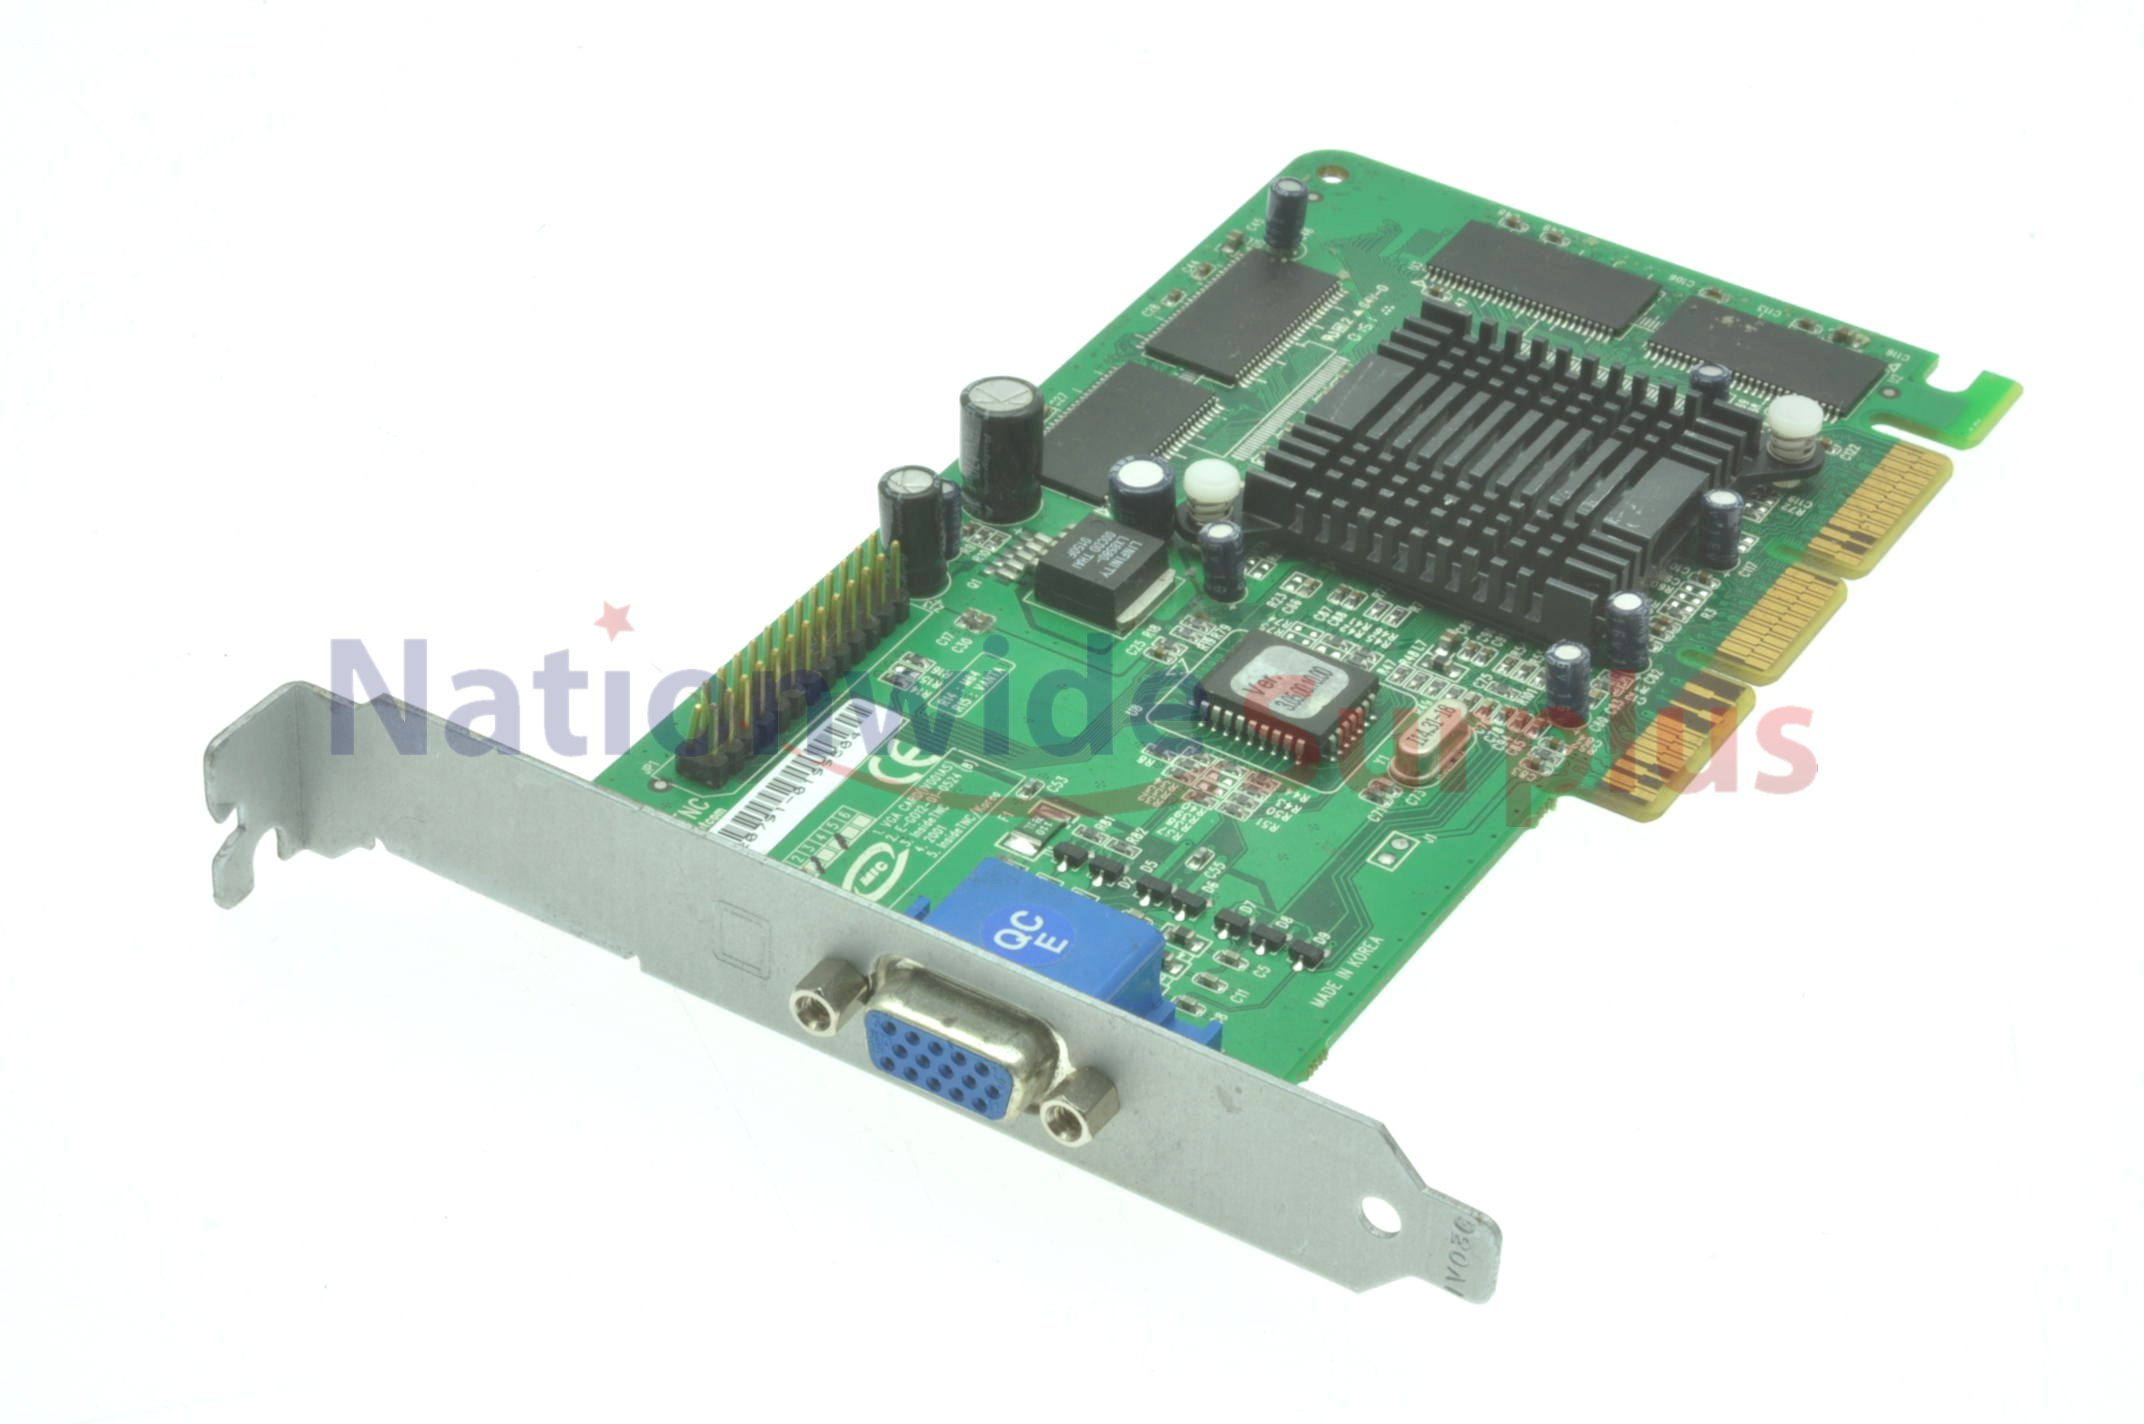 Agp graphics card in pcie slot